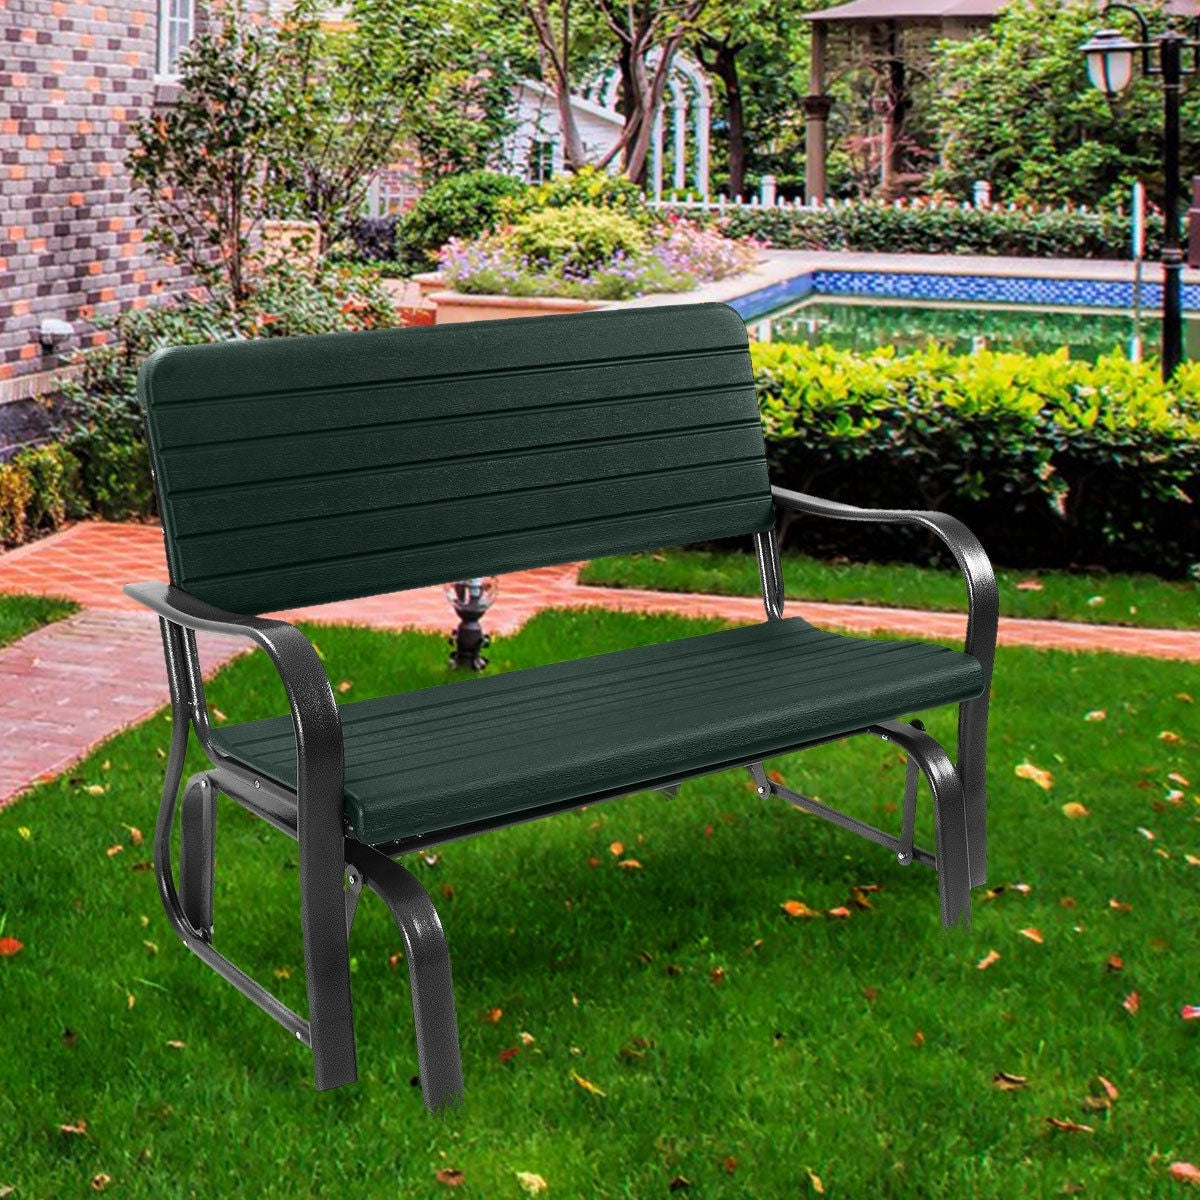 2019 Outdoor Patio Swing Porch Rocker Glider Benches Loveseat Garden Seat Steel Intended For Costway Outdoor Patio Swing Porch Rocker Glider Bench Loveseat Garden Seat  Steel (View 1 of 25)